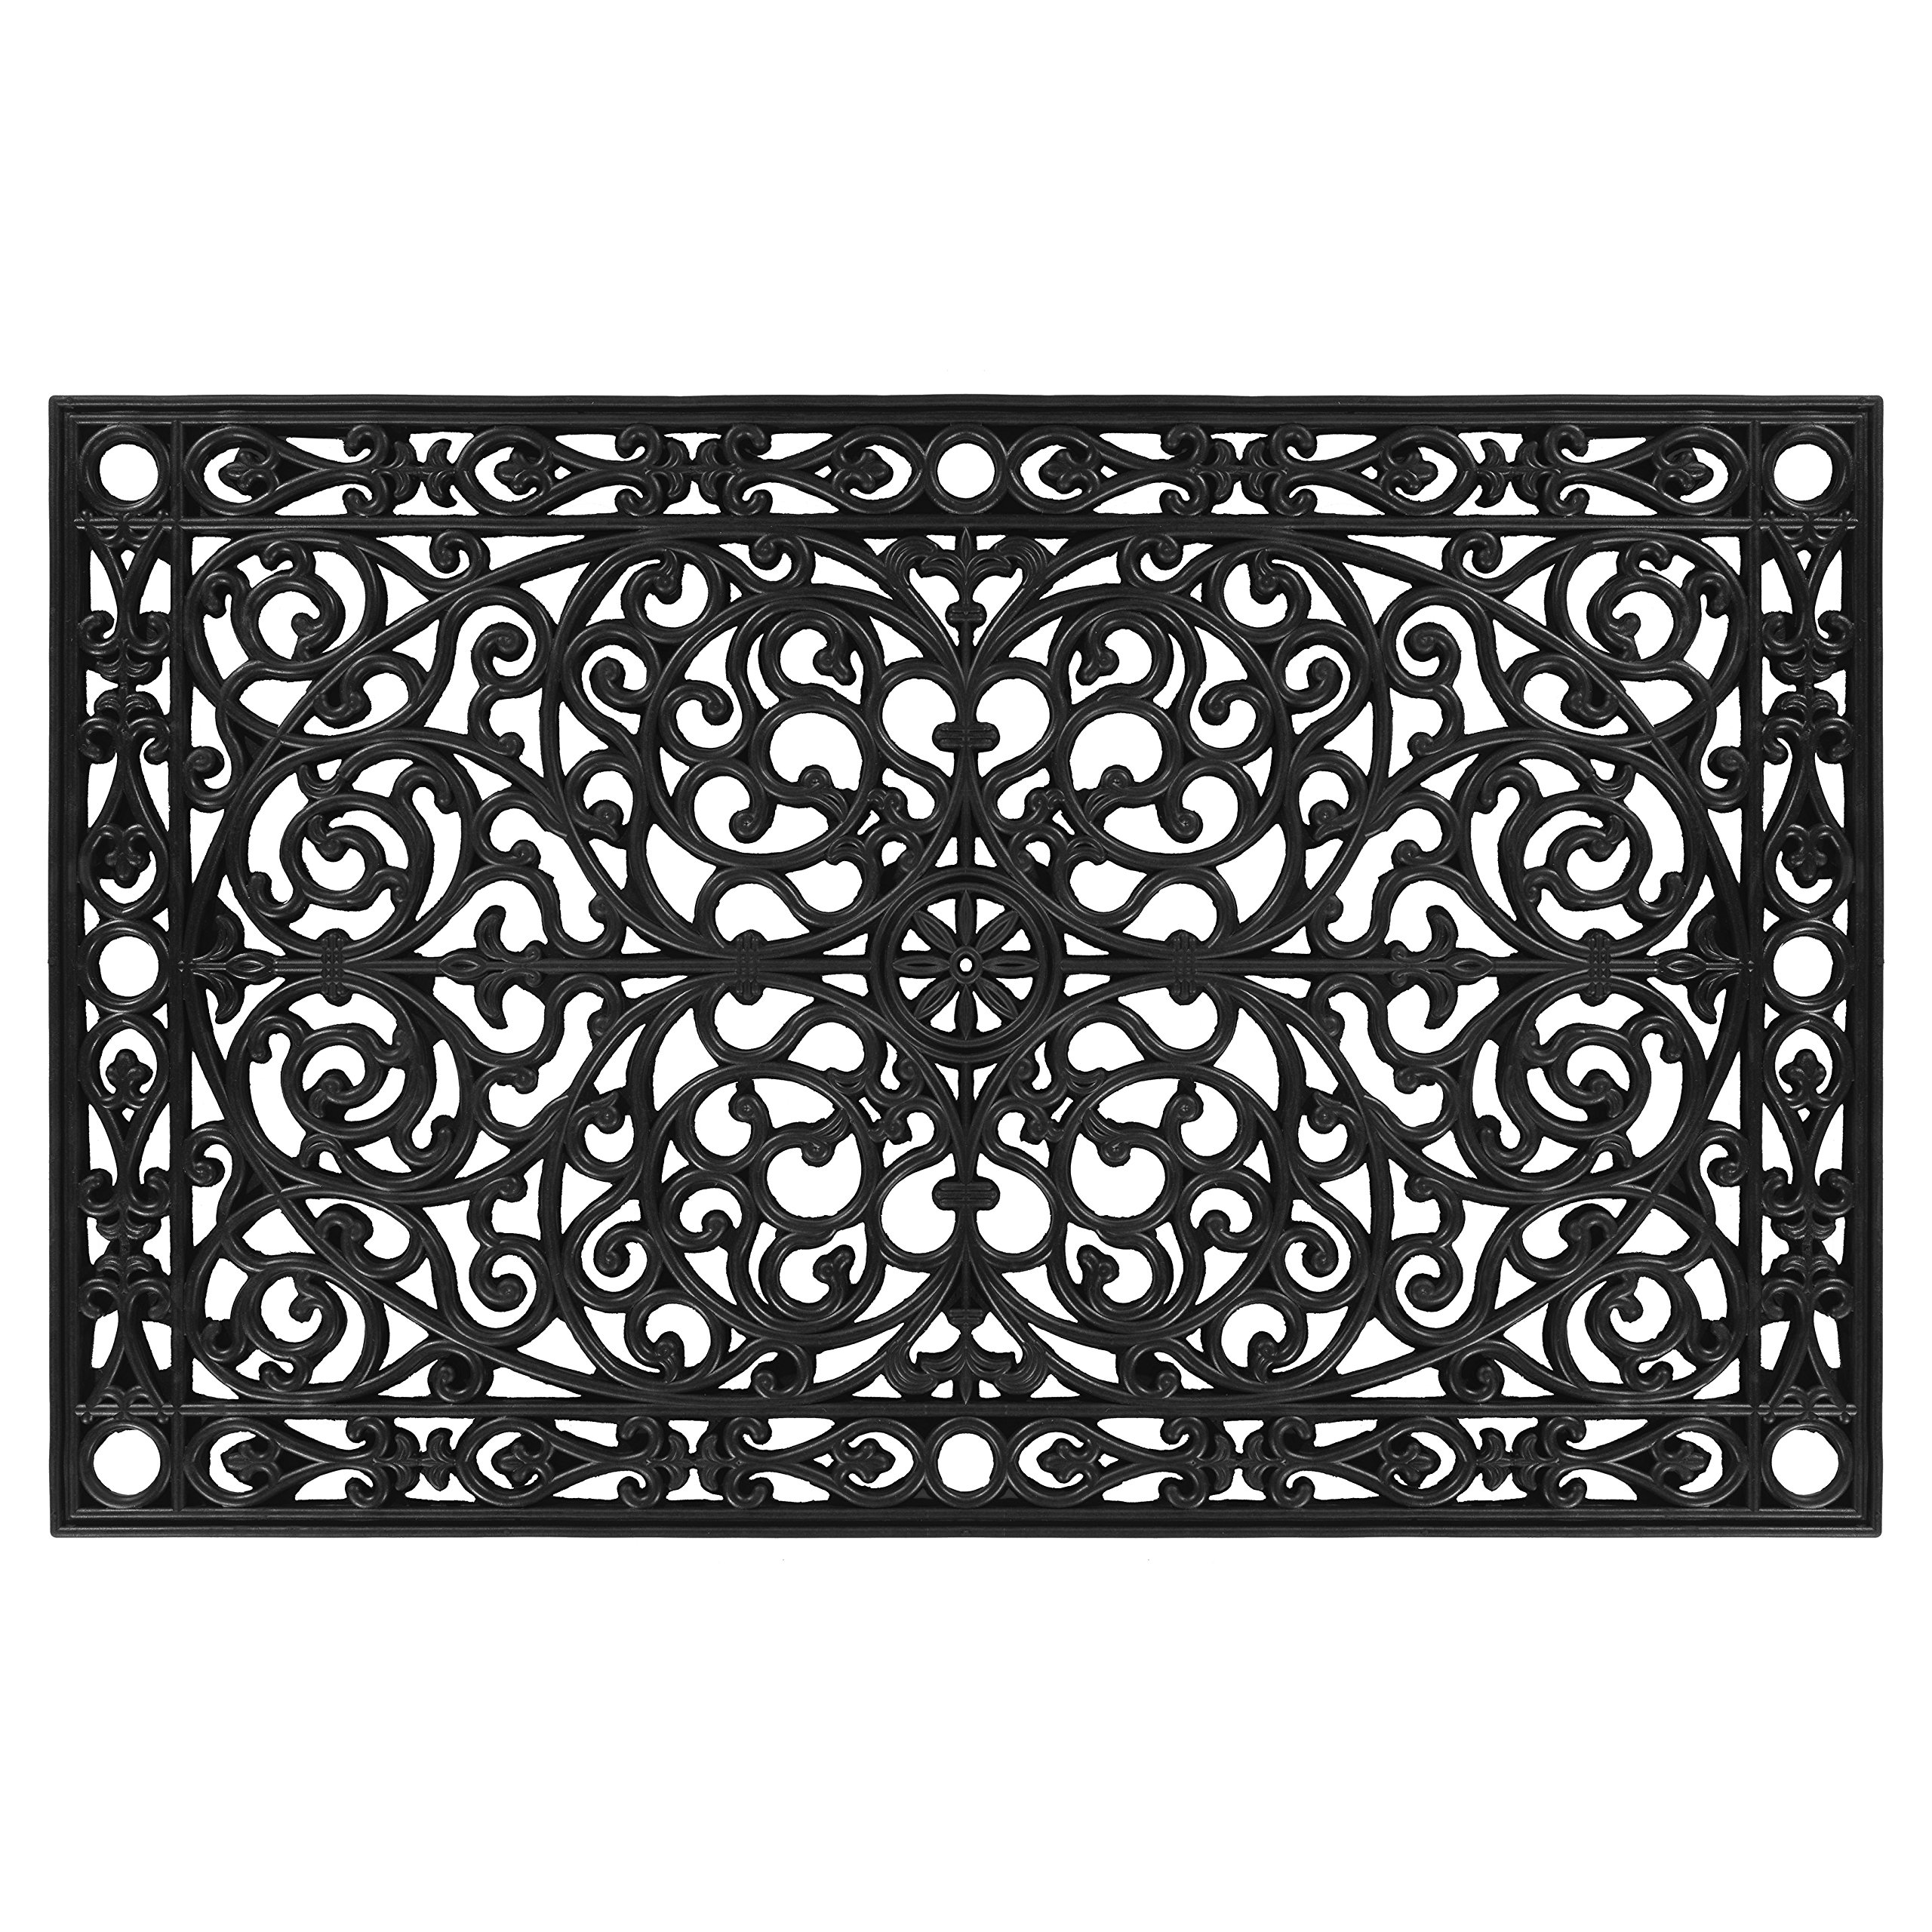 Home & More 900223048 Gatsby Doormat, 2'6'' x 4', Black